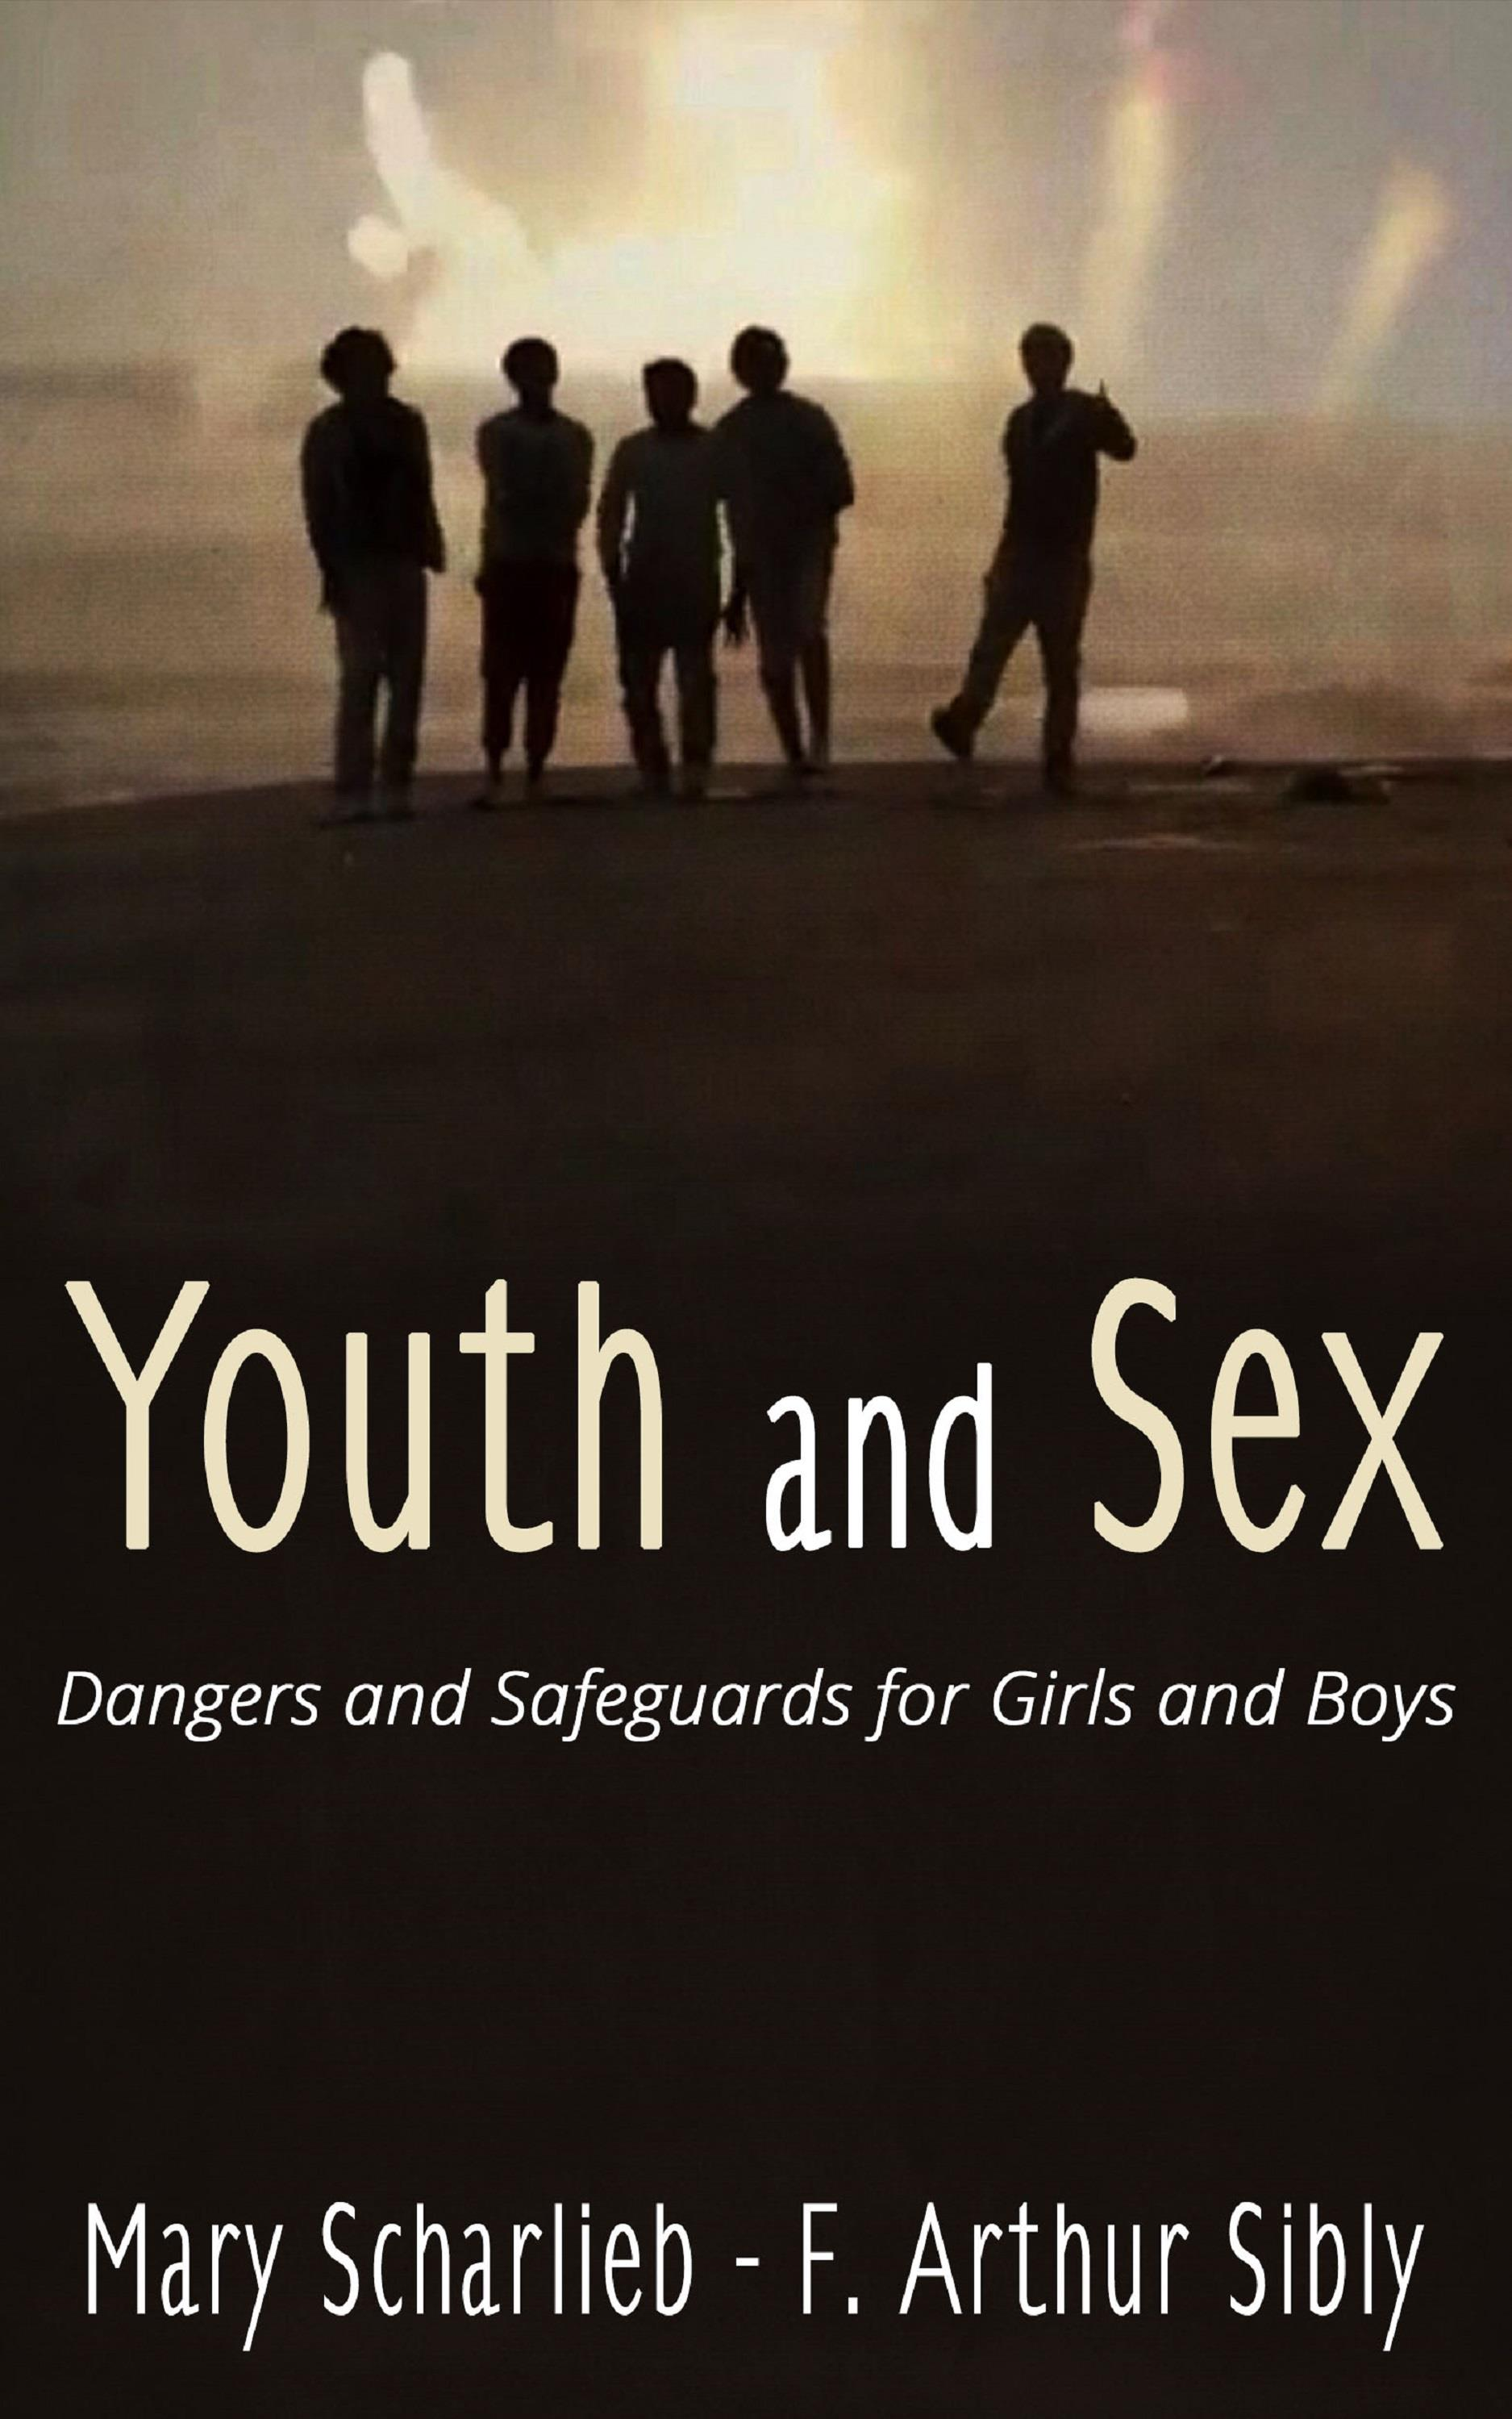 Youth and Sex: Dangers and Safeguards for Girls and Boys